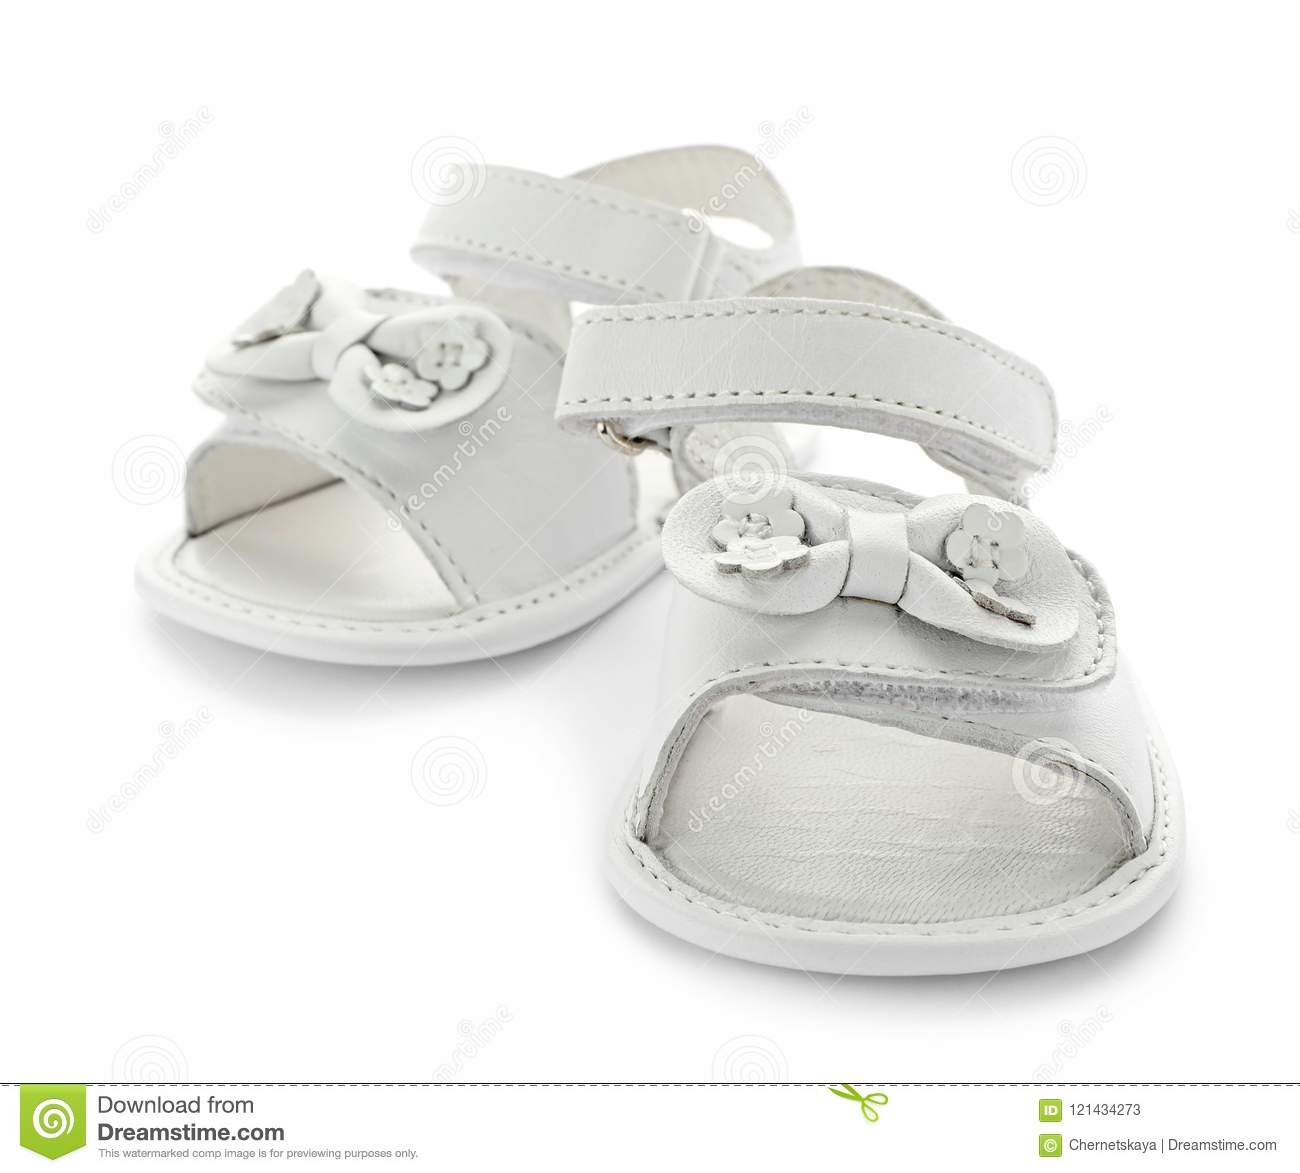 a7356bd797470 Pair of cute baby sandals stock image. Image of strap - 121434273